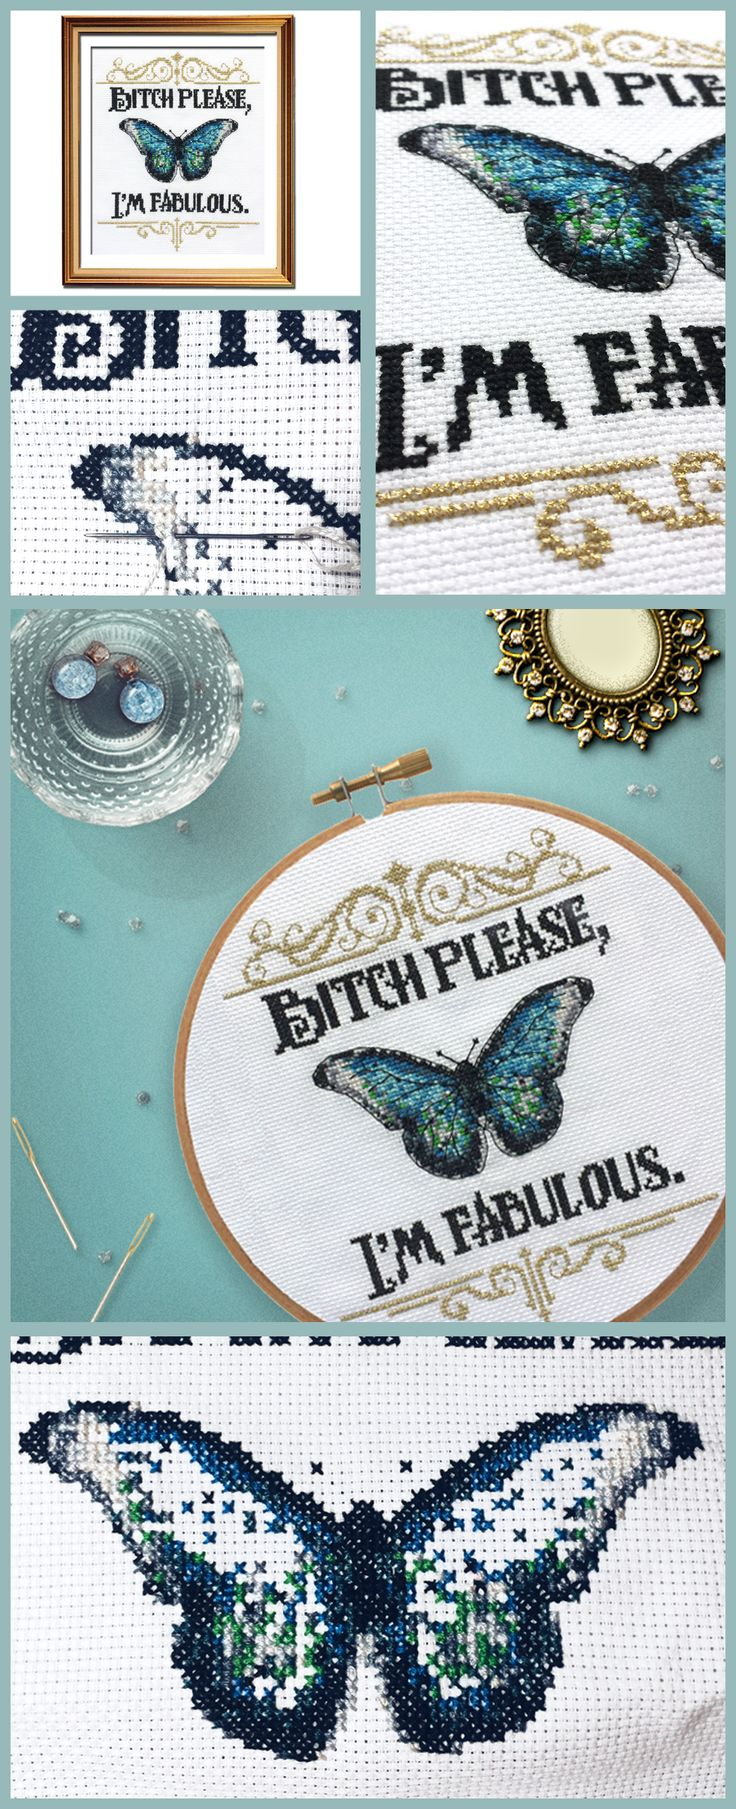 Prettiest funny cross stitch pattern ever